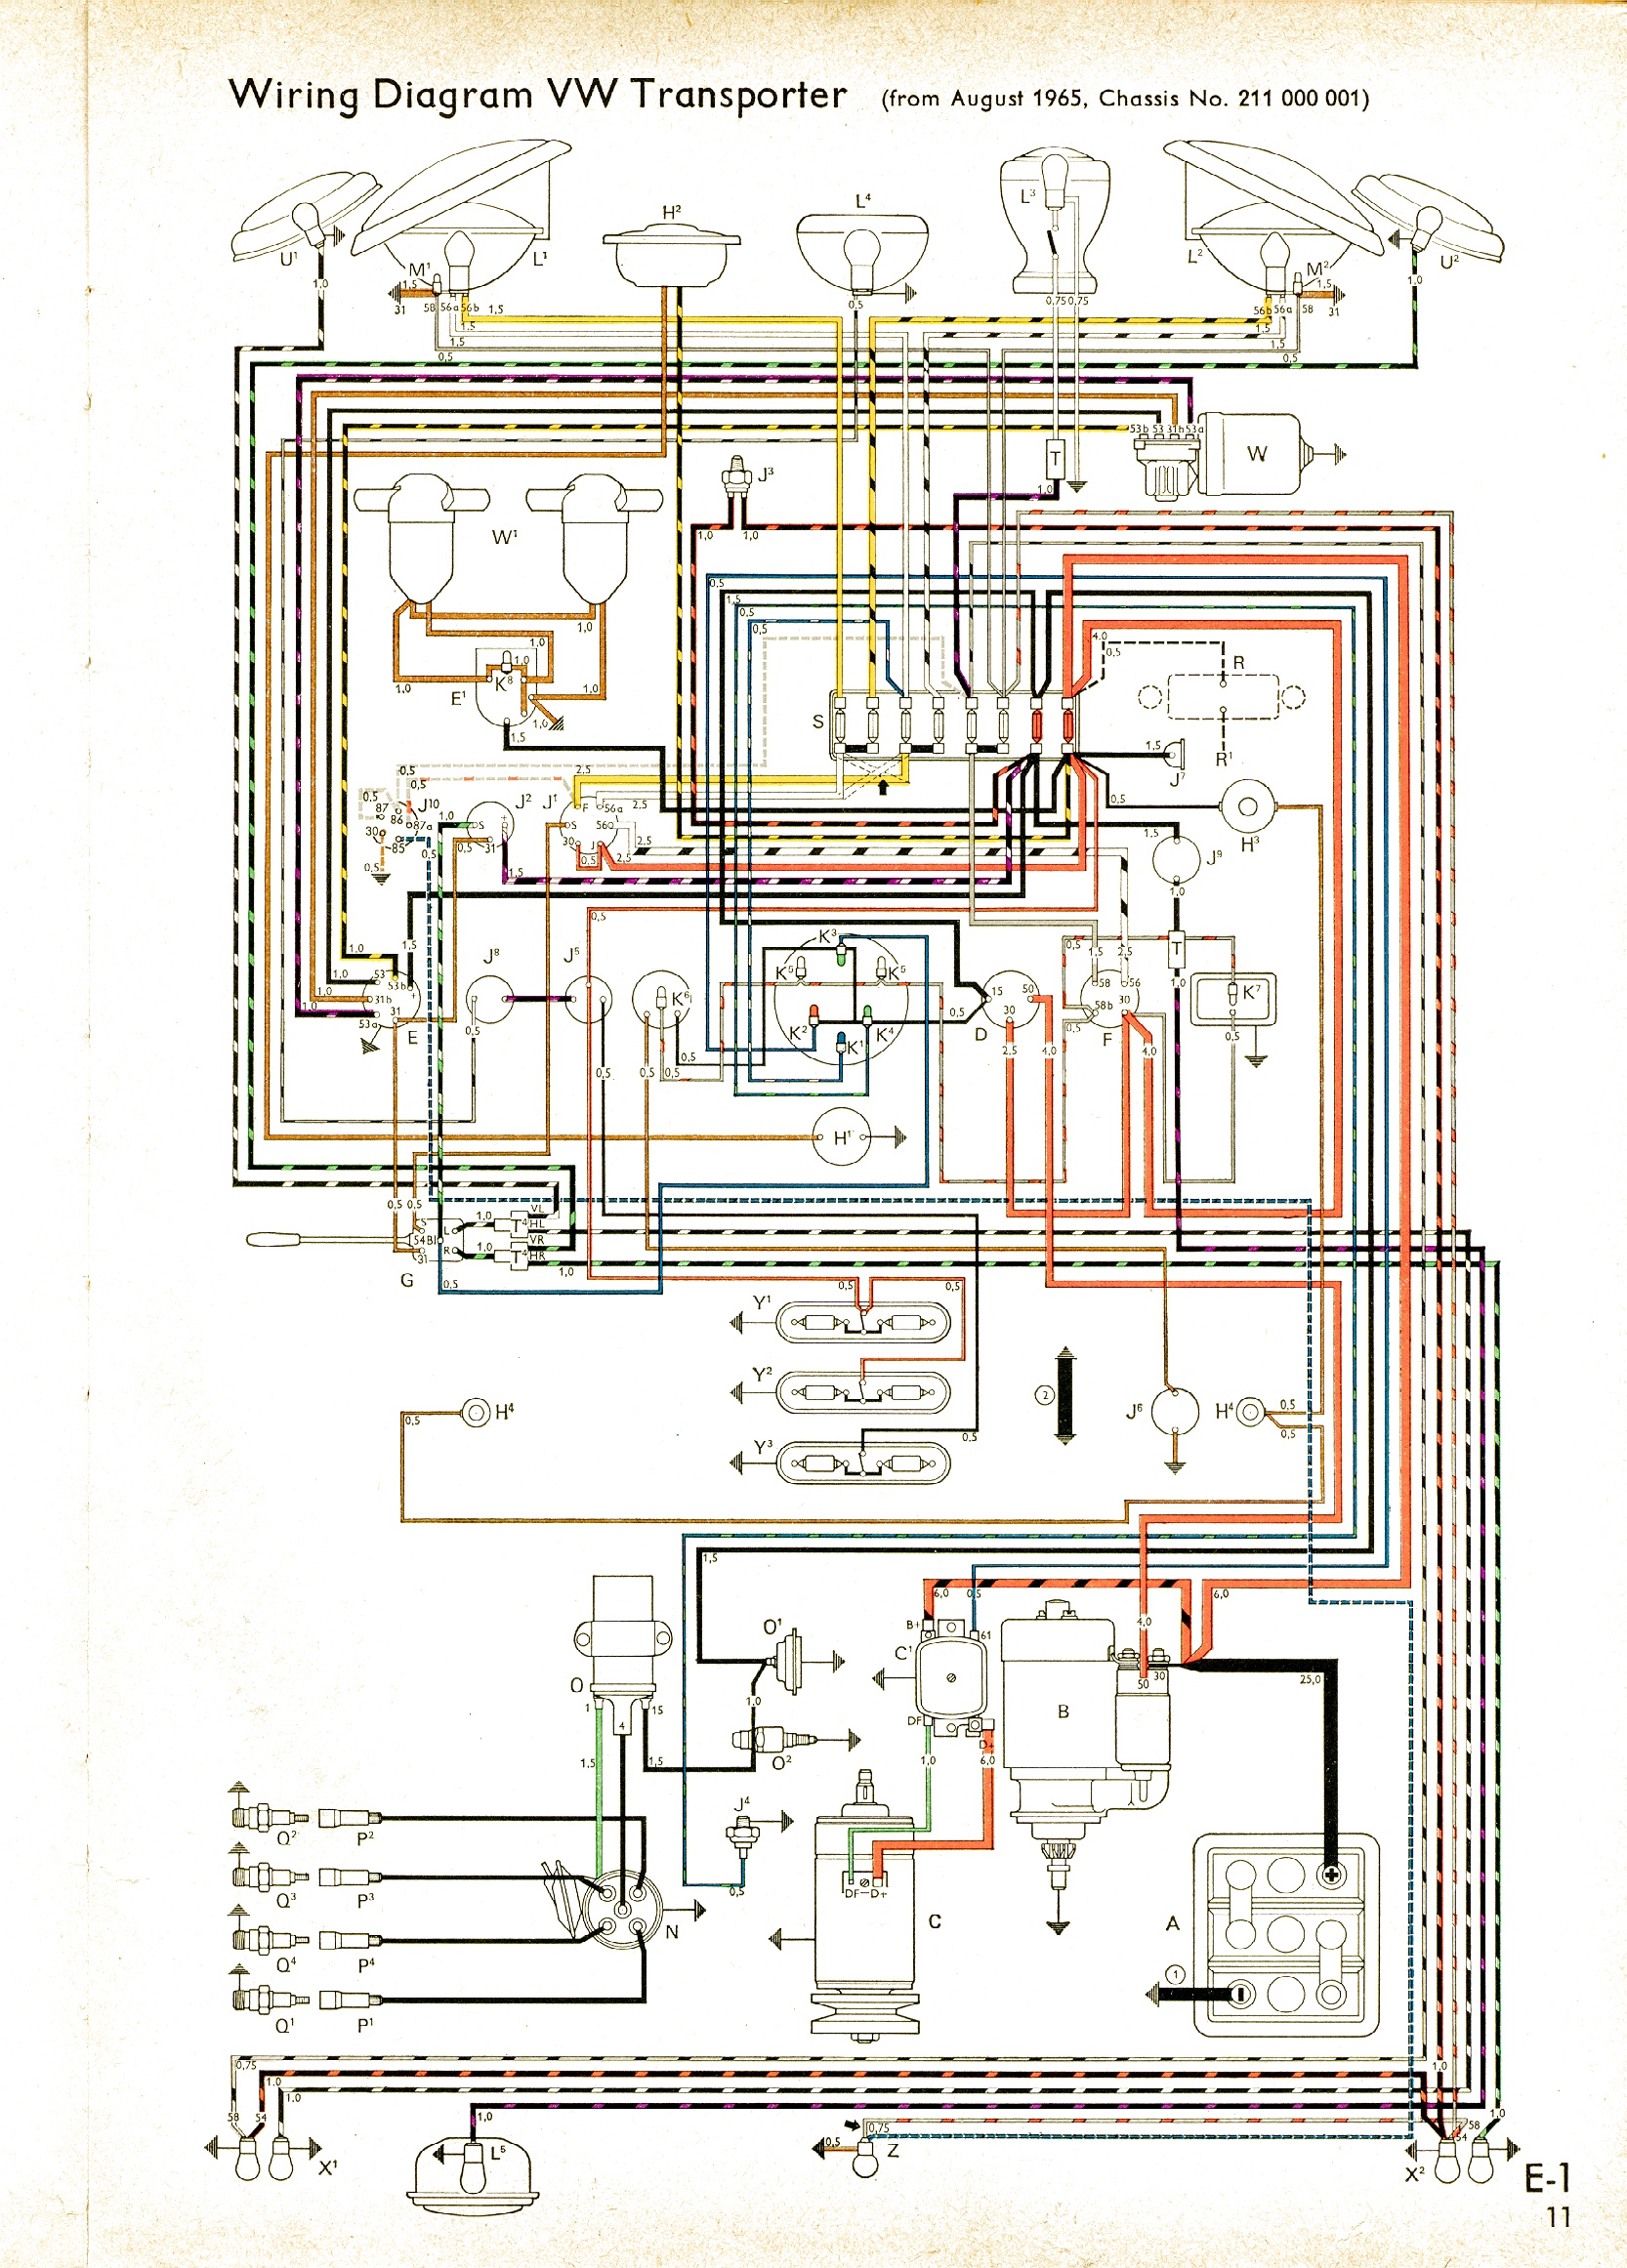 bus 65 bus wiring diagram vw wiring harness diagram \u2022 wiring diagrams j 1971 vw bus wiring diagram at honlapkeszites.co